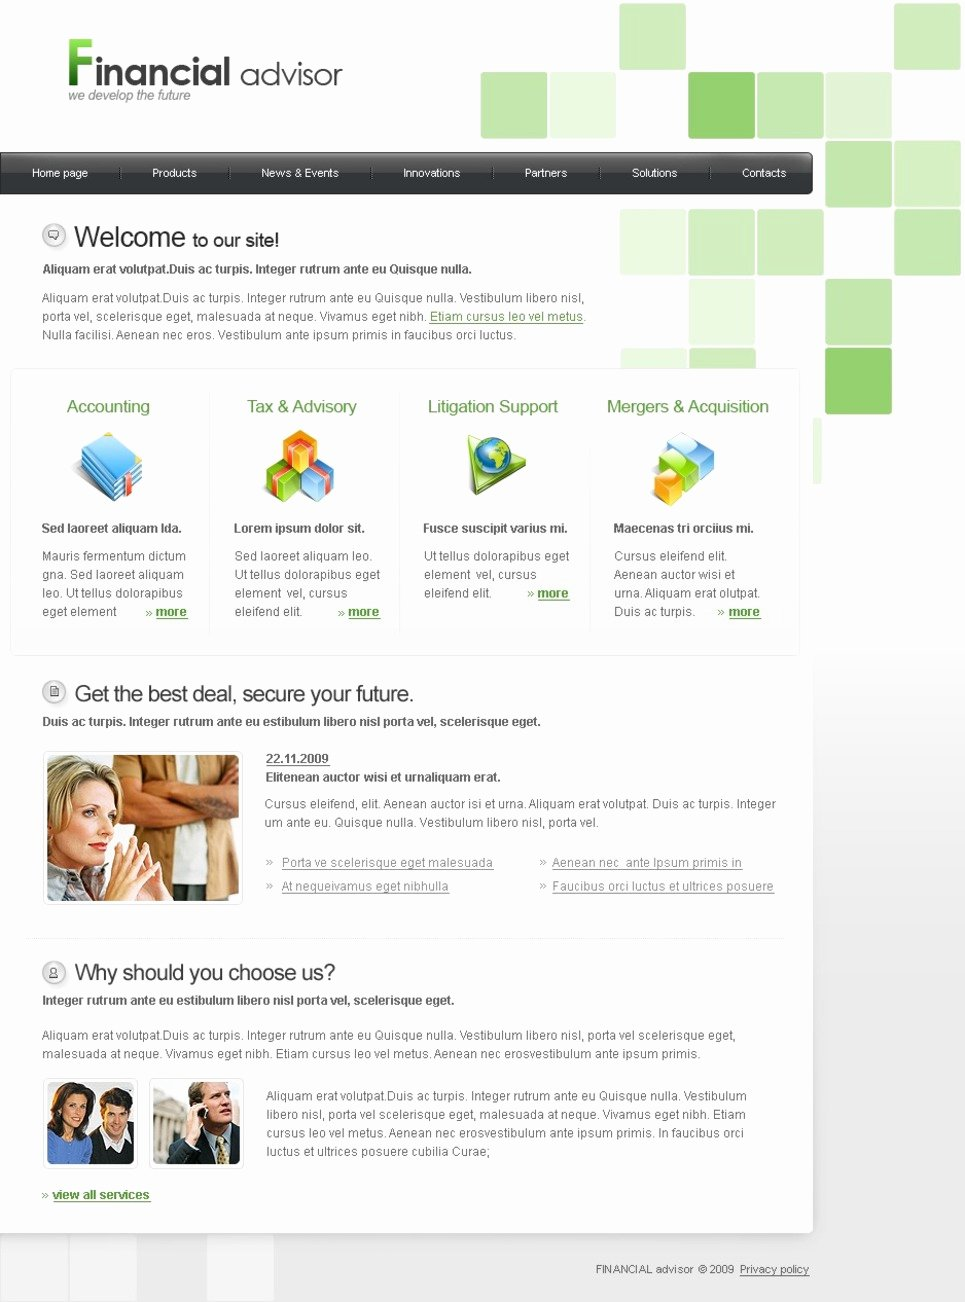 Financial Advisor Website Template Awesome Financial Advisor Website Template